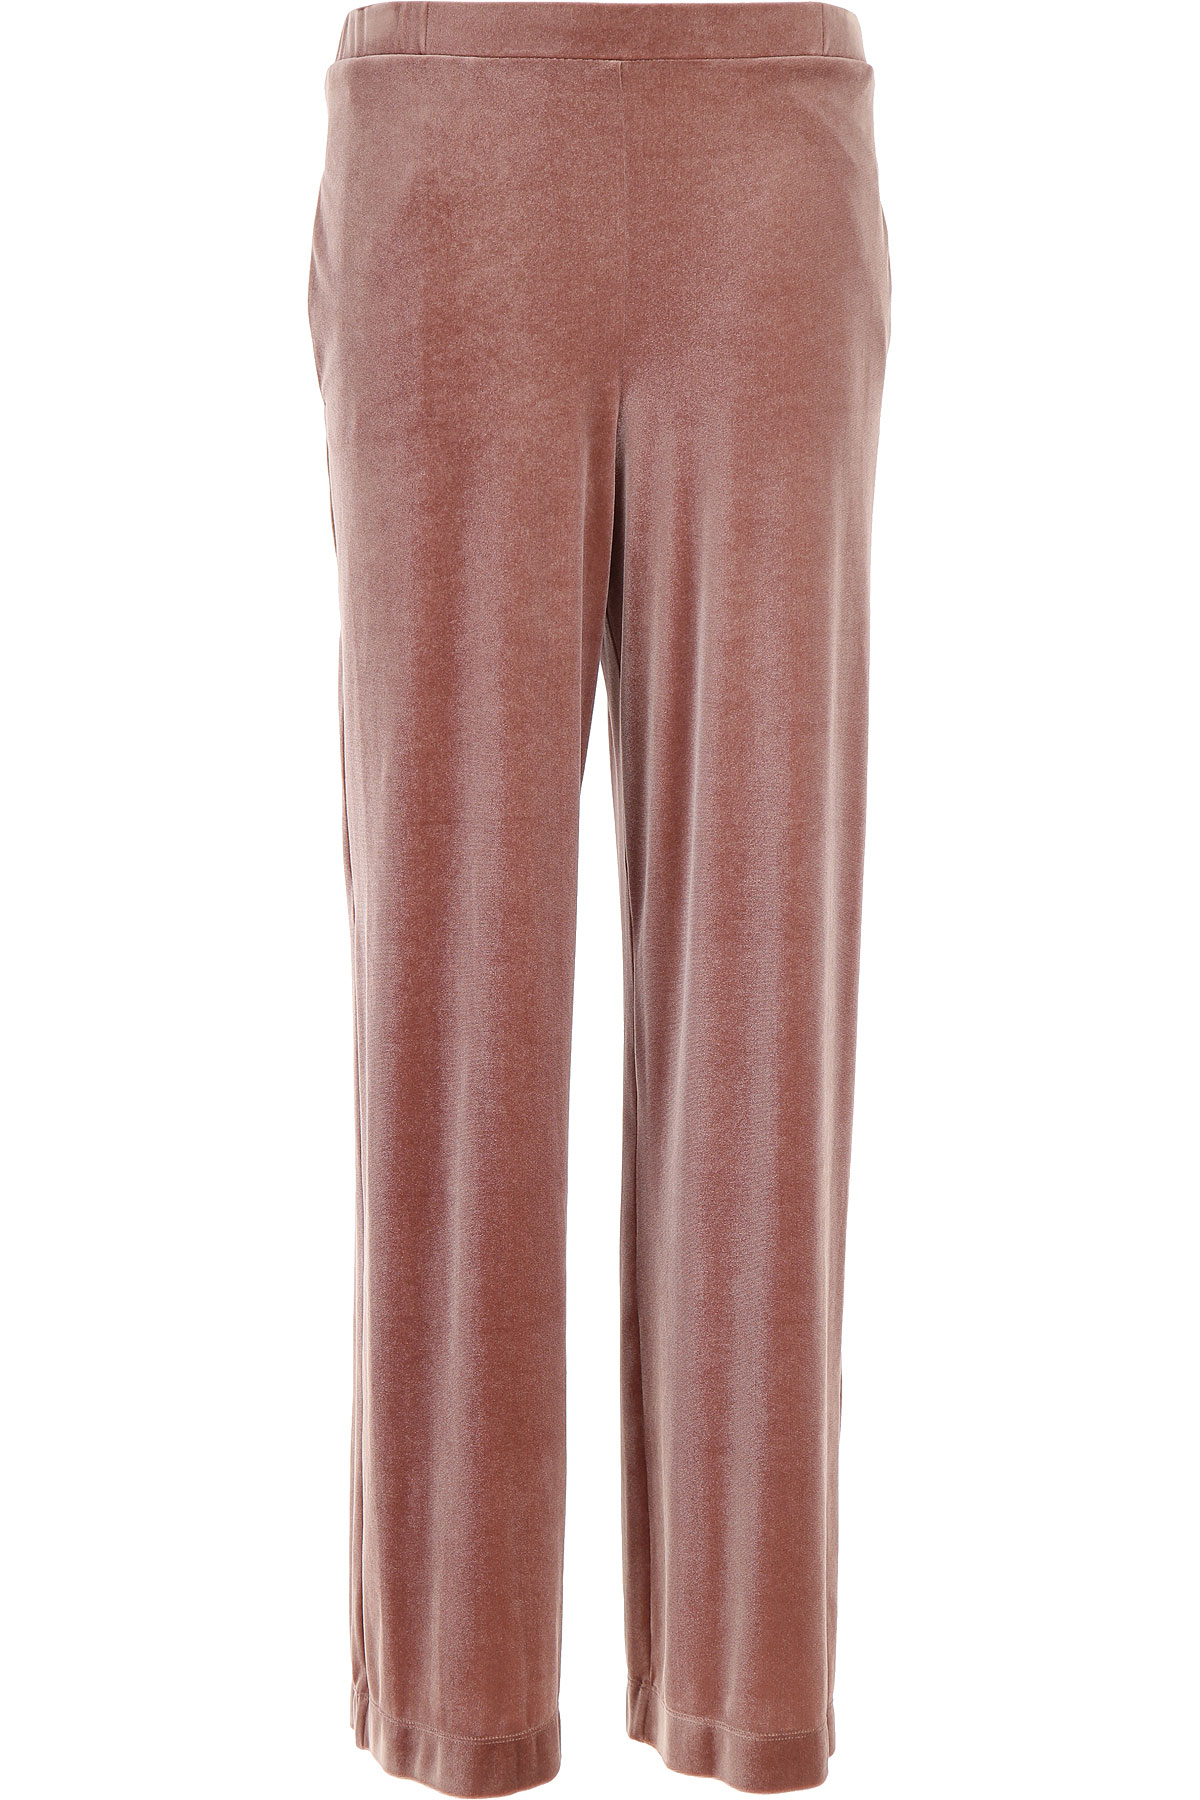 Max Mara Pants for Women On Sale, antique pink, polyestere, 2019, L (IT 44 ) XS (IT 38)